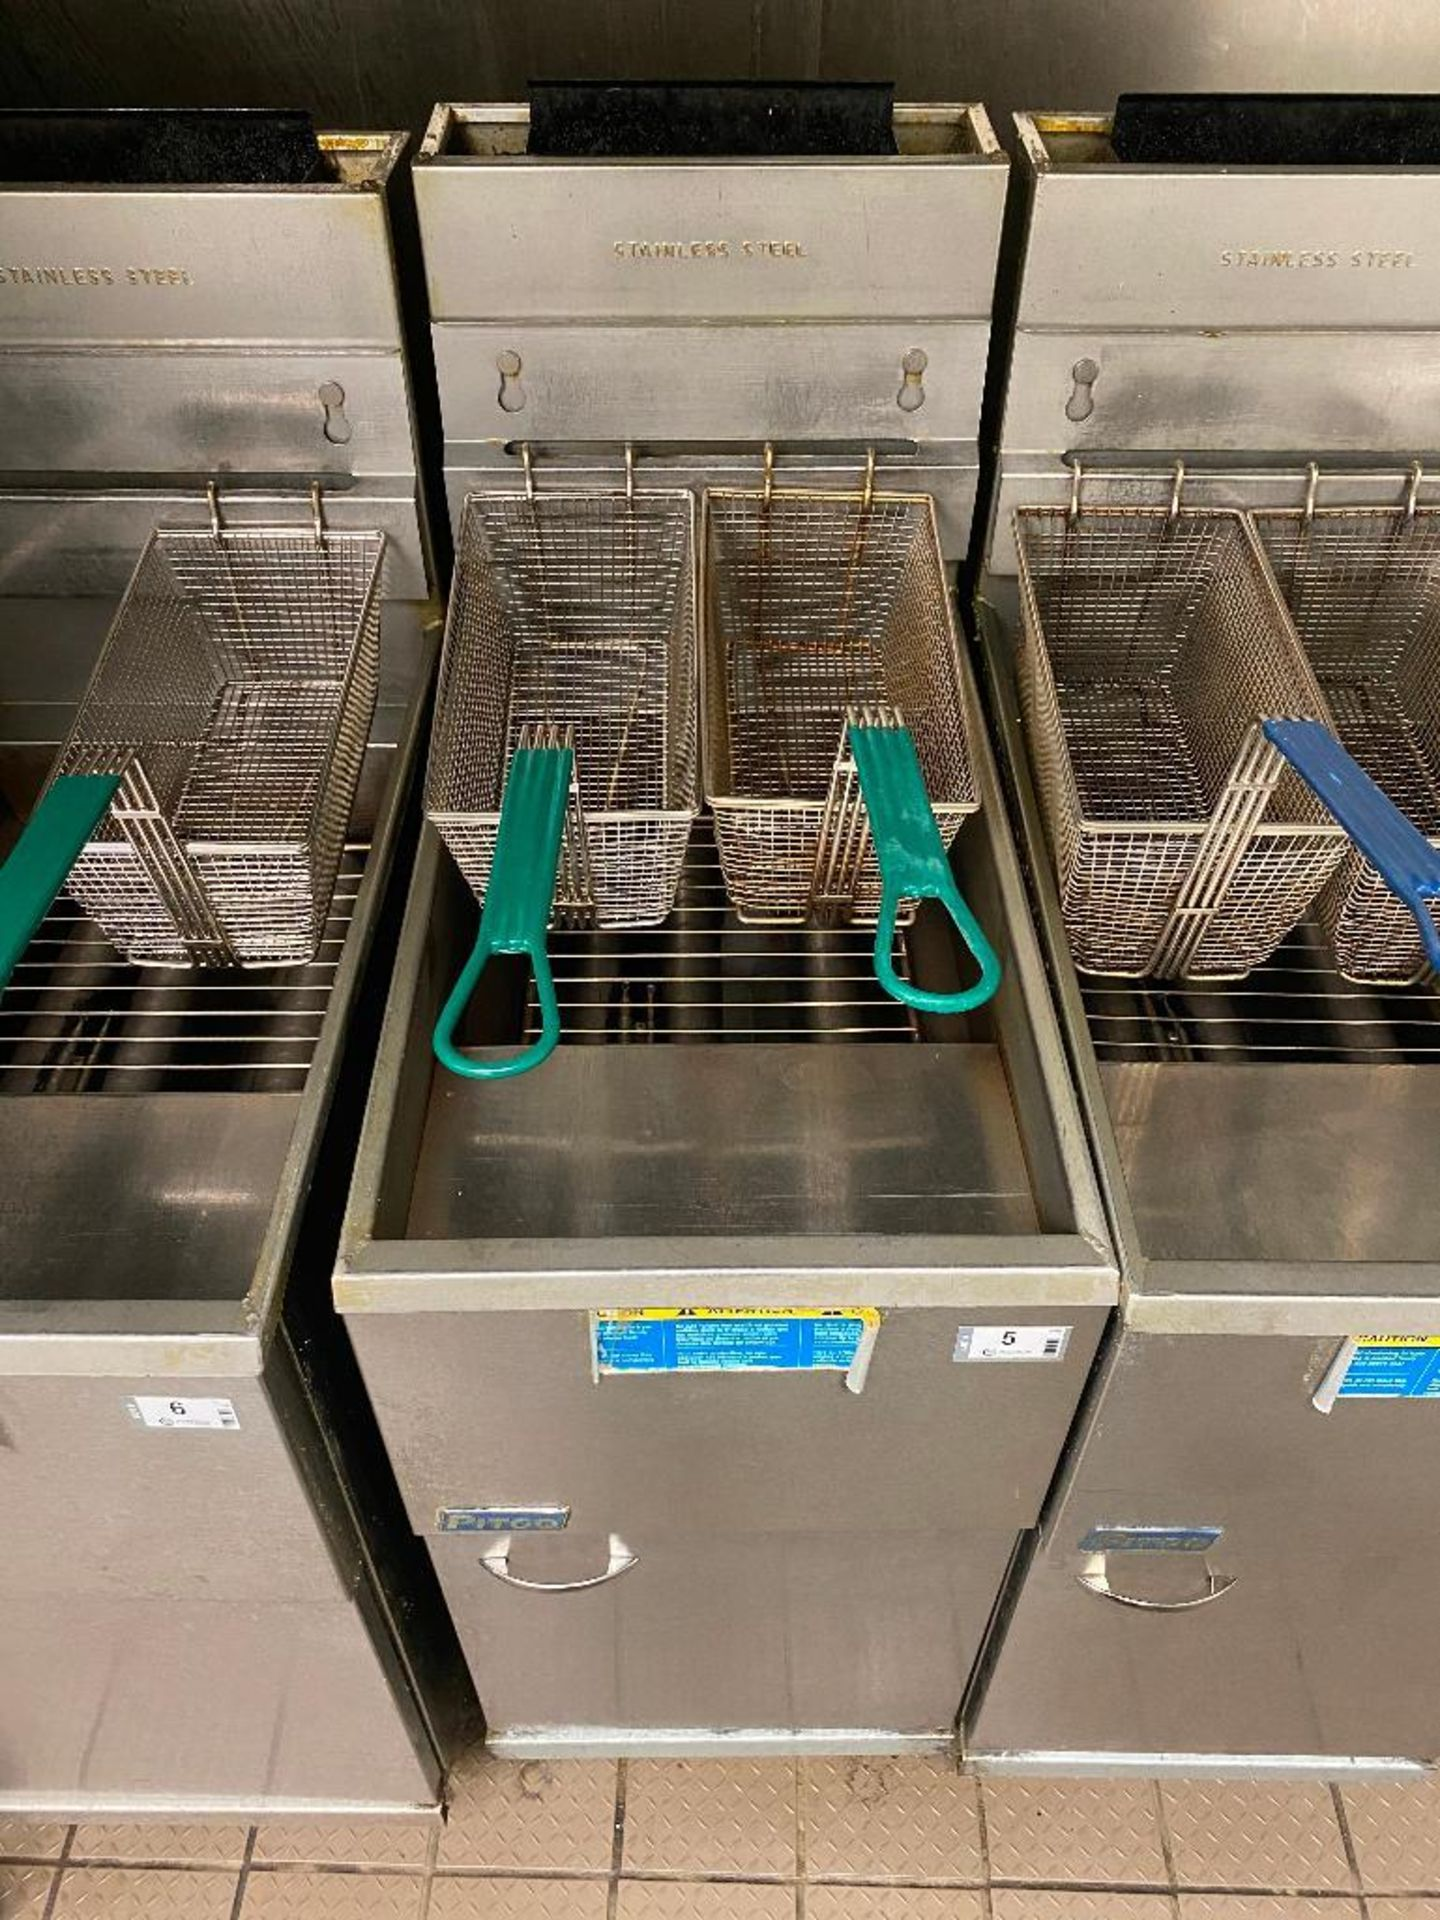 PITCO 40C+ FLOOR TUBE FIRED NATURAL GAS FRYER - NOTE: REQUIRES DISCONNECT,PLEASE INSPECT - Image 2 of 4